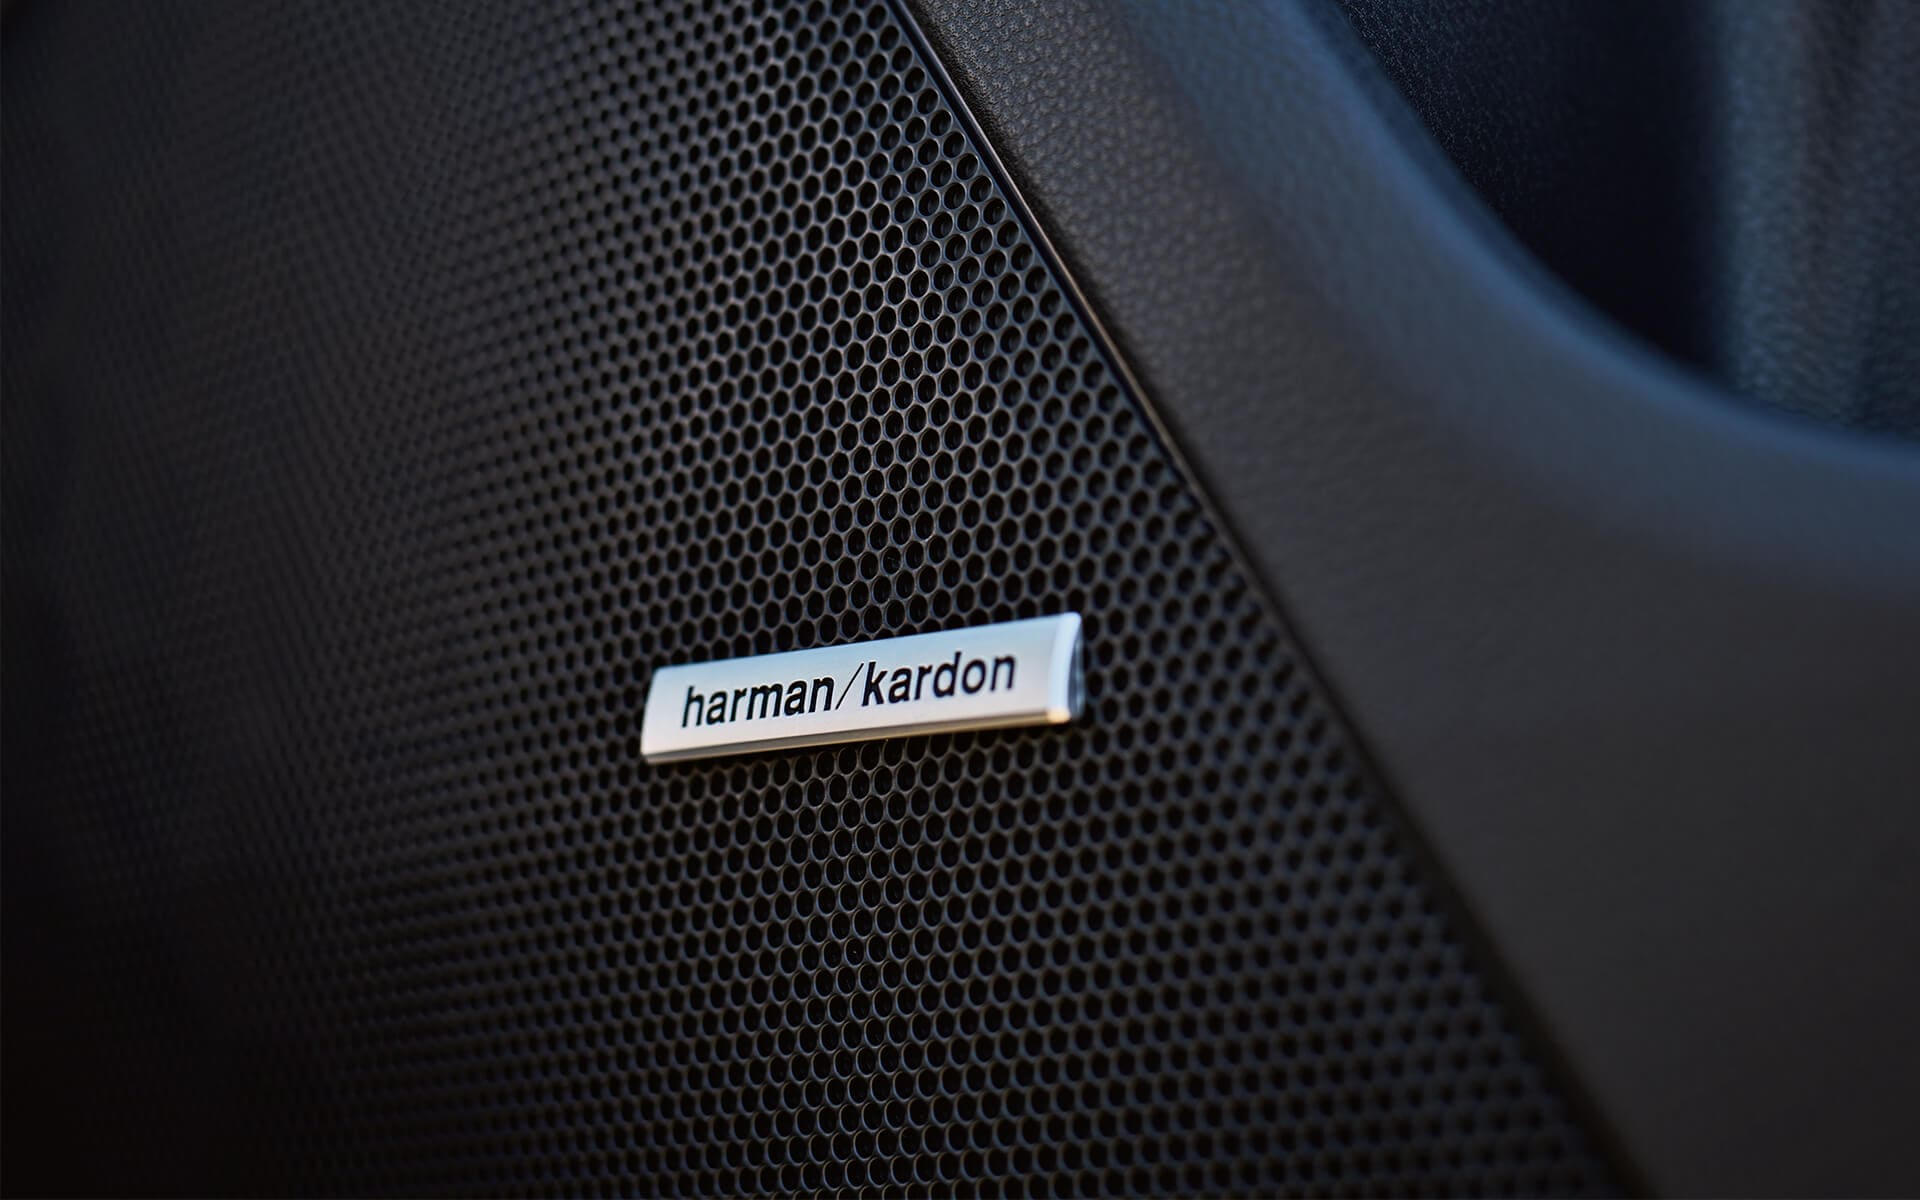 A close-up of a Harman Kardon Premium Audio speaker in the 2020 Crosstrek.